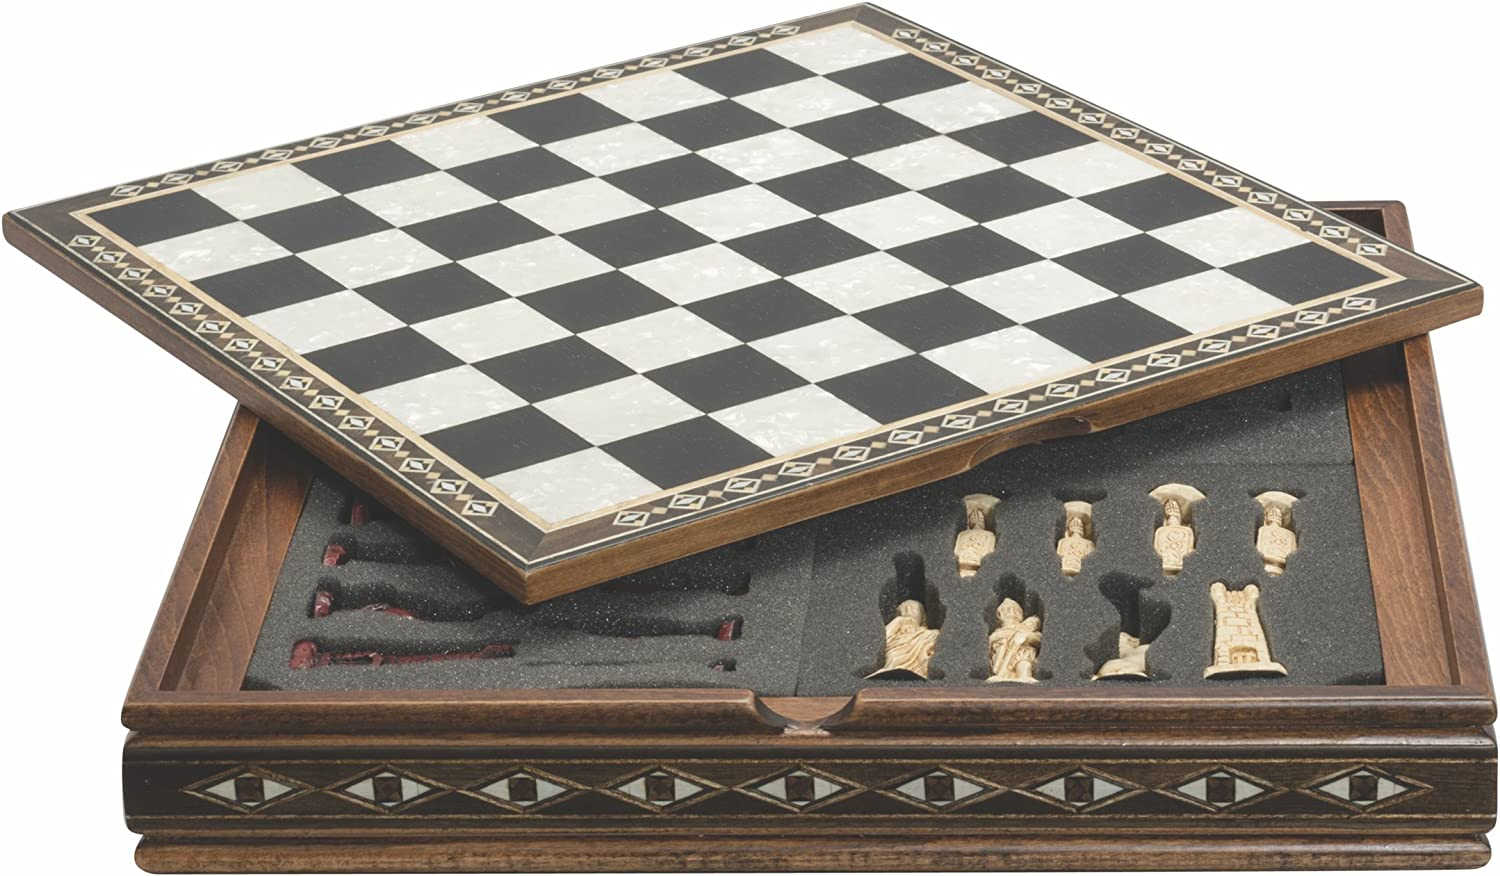 Studio Anne Carlton Wooden Draughts Board Game 30 Pieces